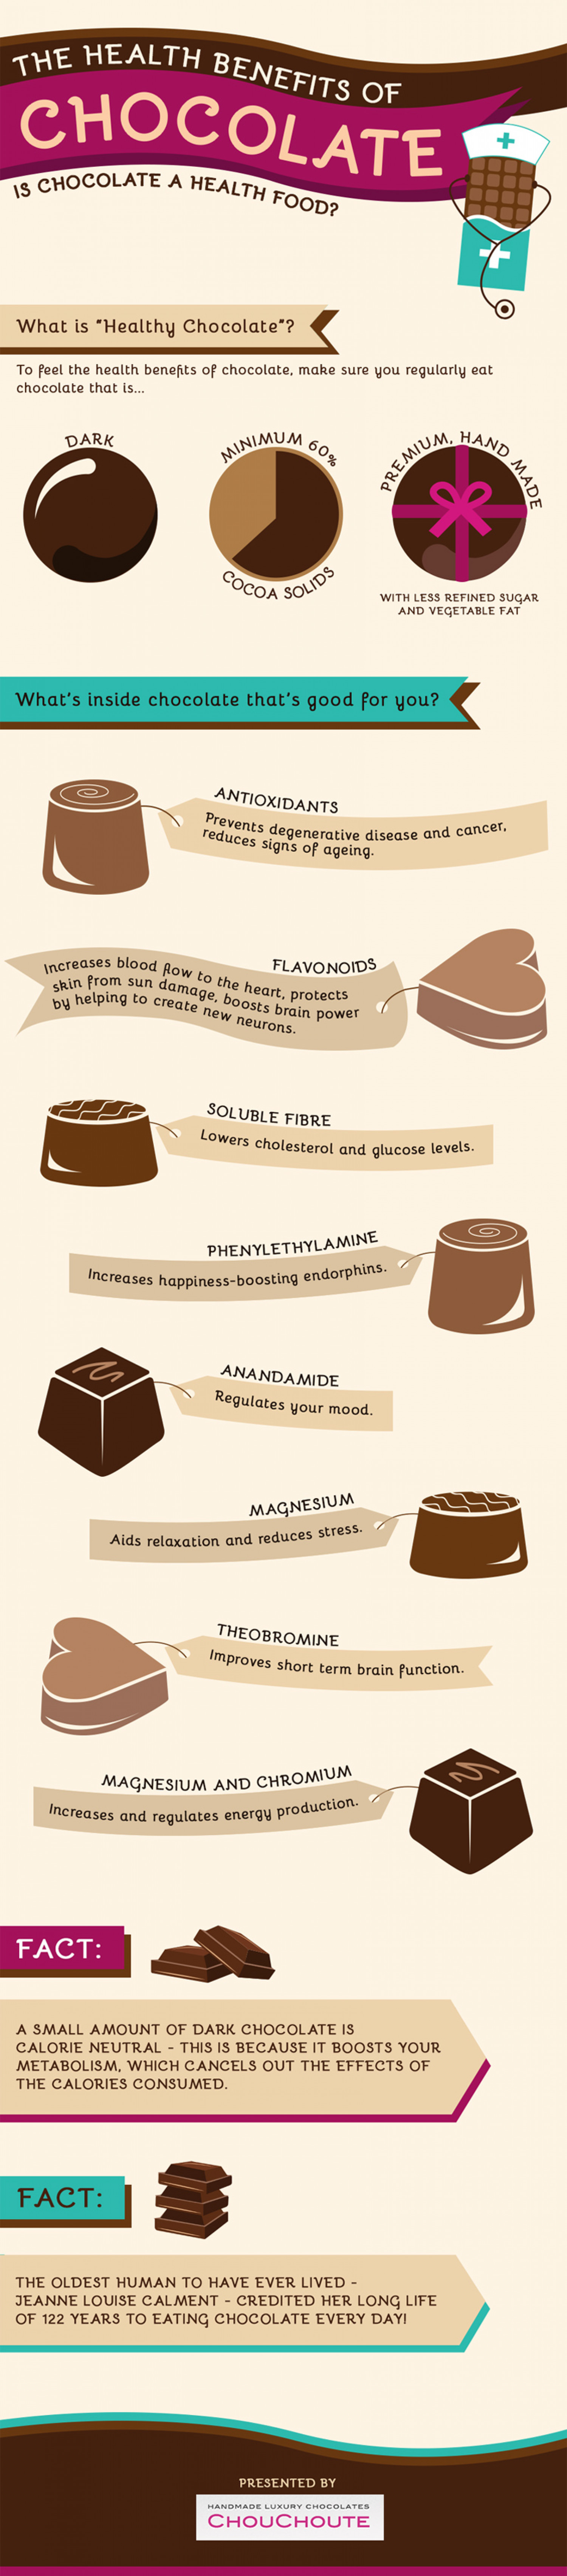 The Health Benefits of Chocolate Infographic